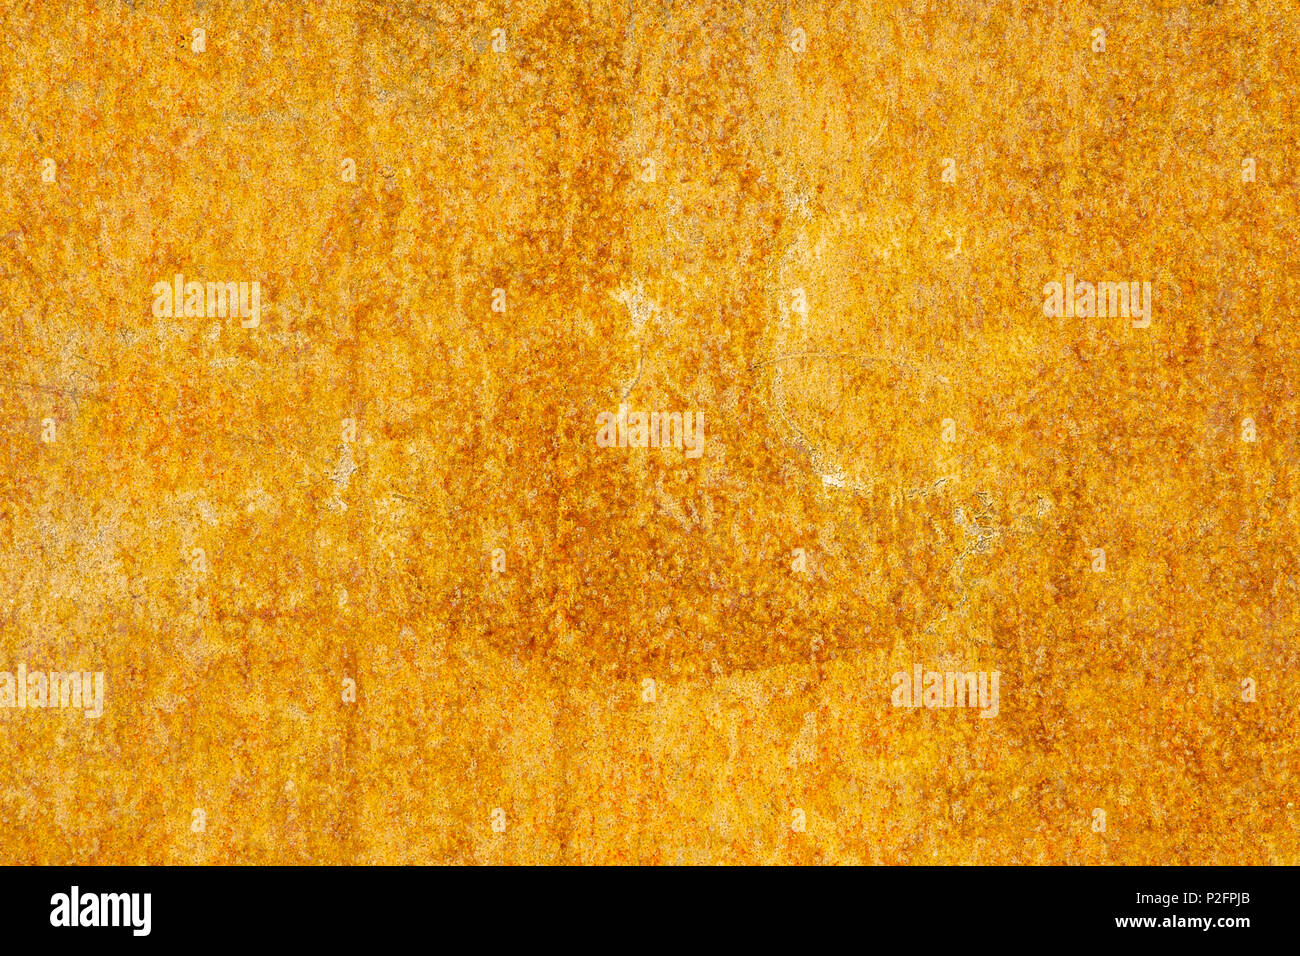 Rusty Yellow Painted Metal Wall Detailed Texture Stock